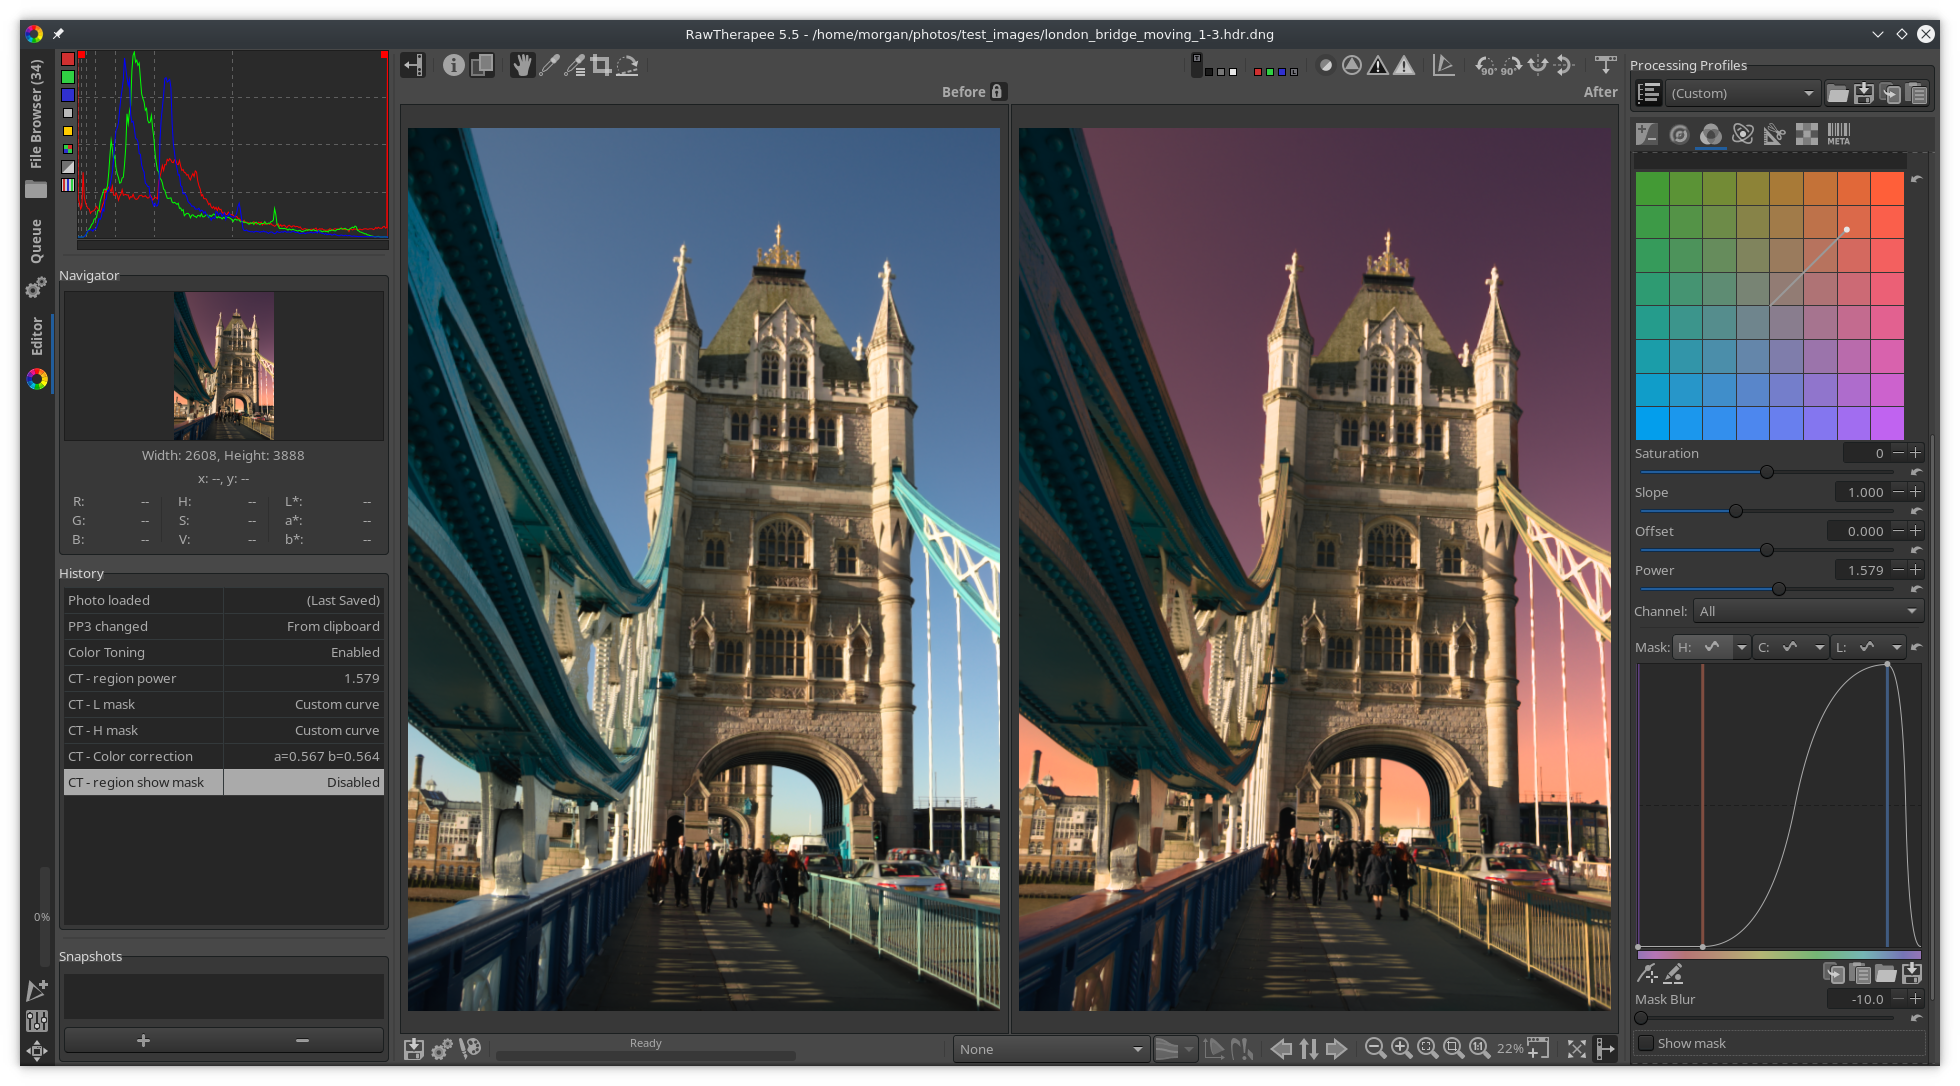 RawTherapee v5.5 released with Haze Removal, improved curves tool ... Free Raw photo-processing software RawTherapee has been updated to version  5.5, gaining a new Shadows/Highlights tool, a striping and banding tool, ...